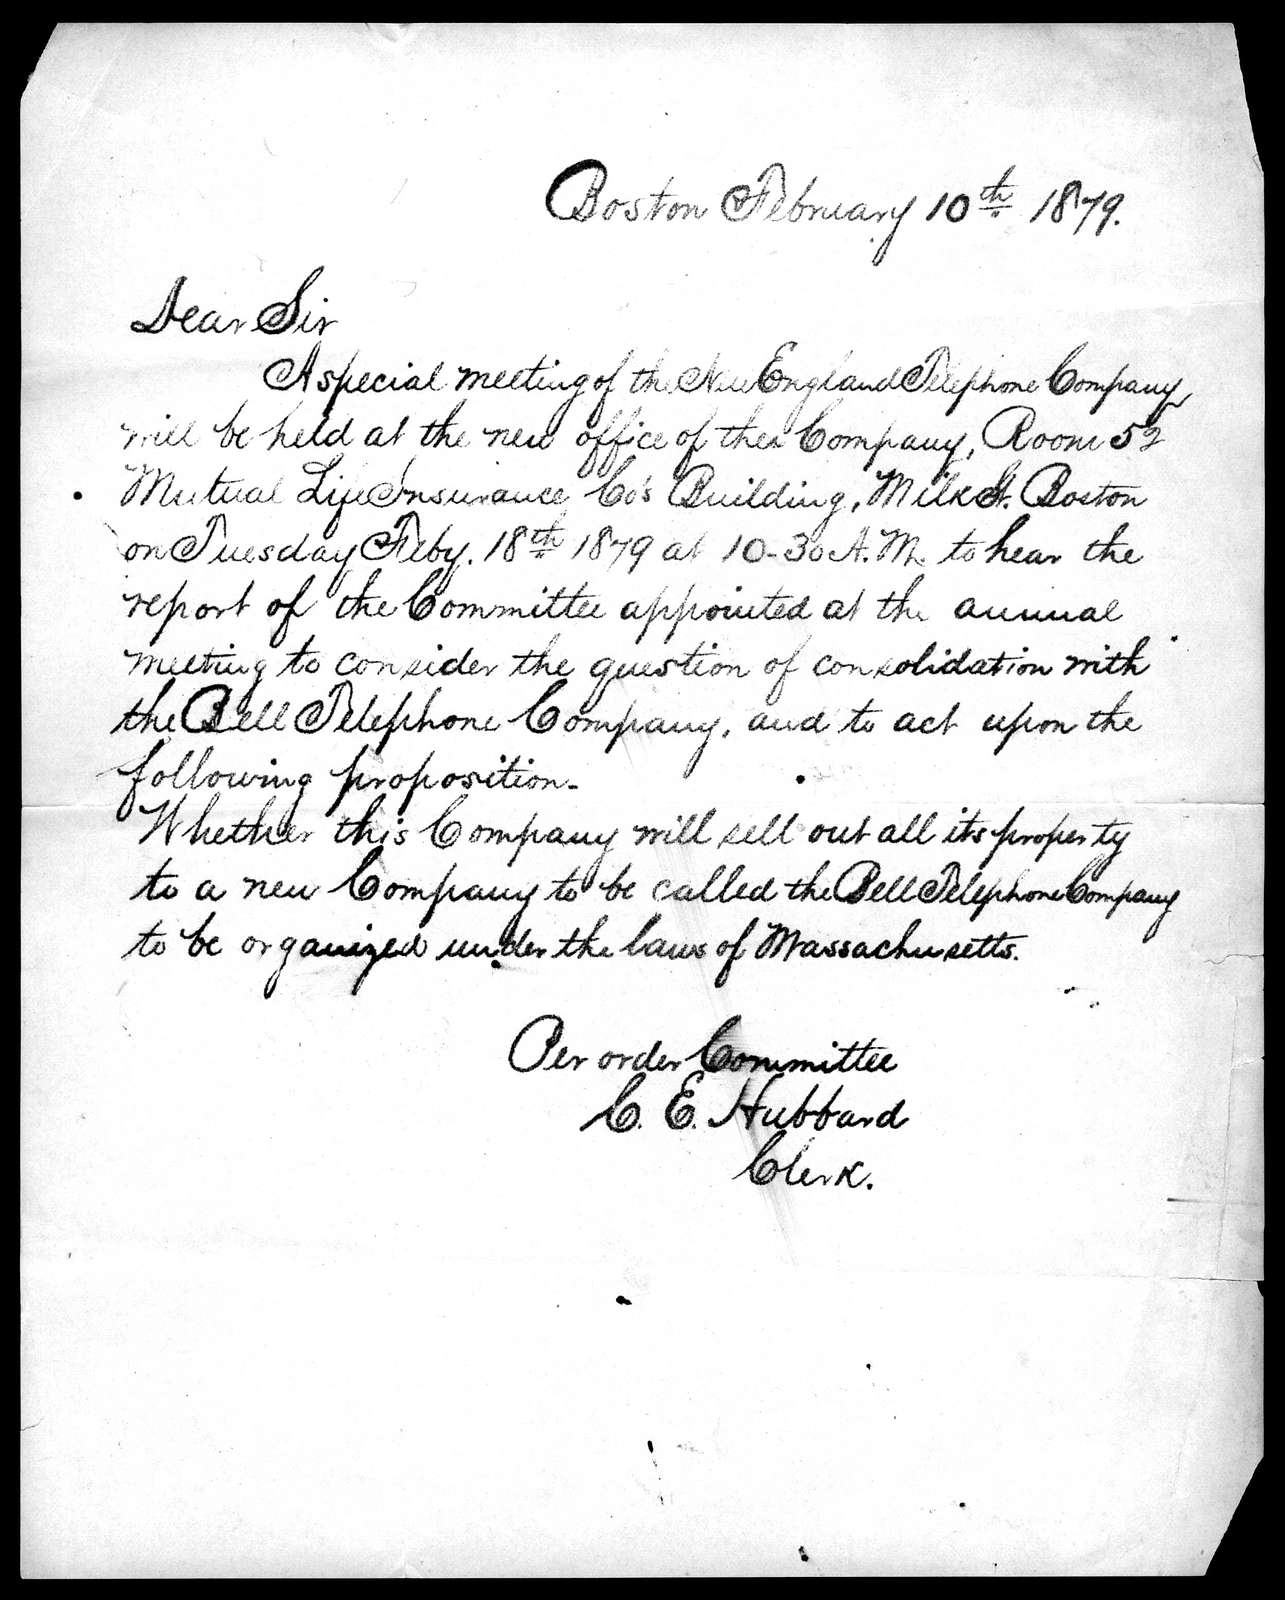 Letter by Charles E. Hubbard, February 10, 1879